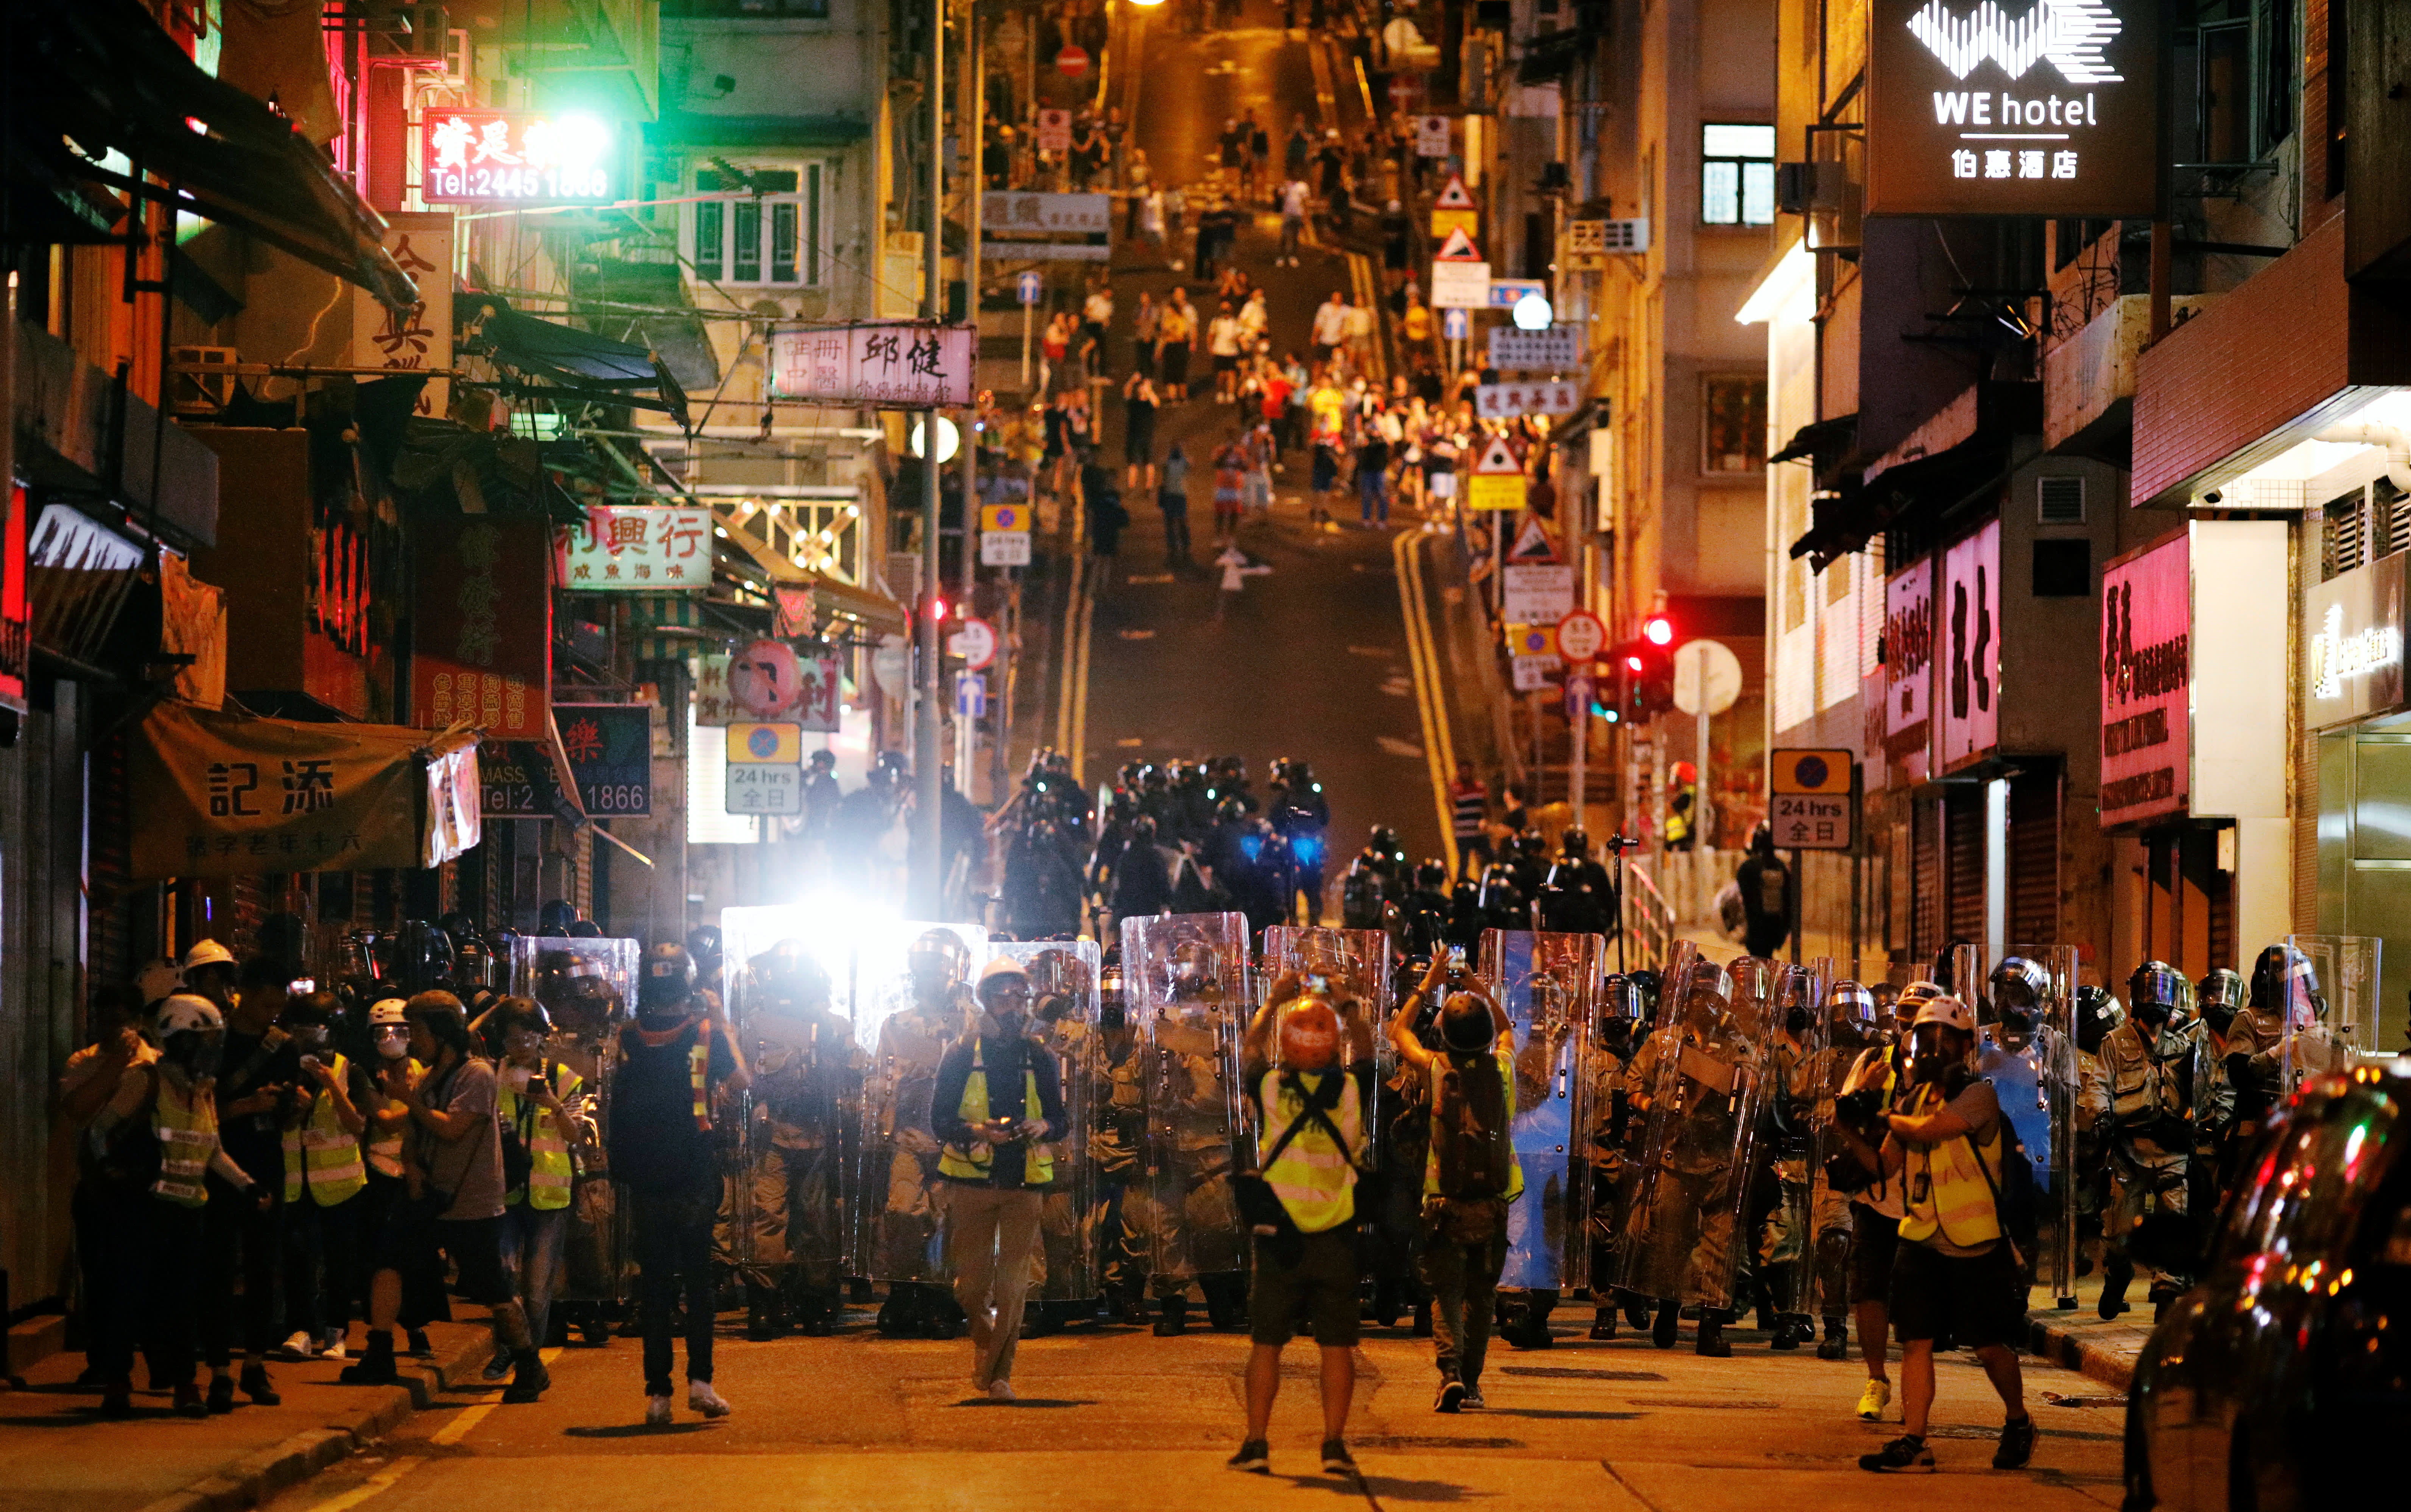 Longstanding economic frustration is fueling Hong Kong's protests, expert says thumbnail